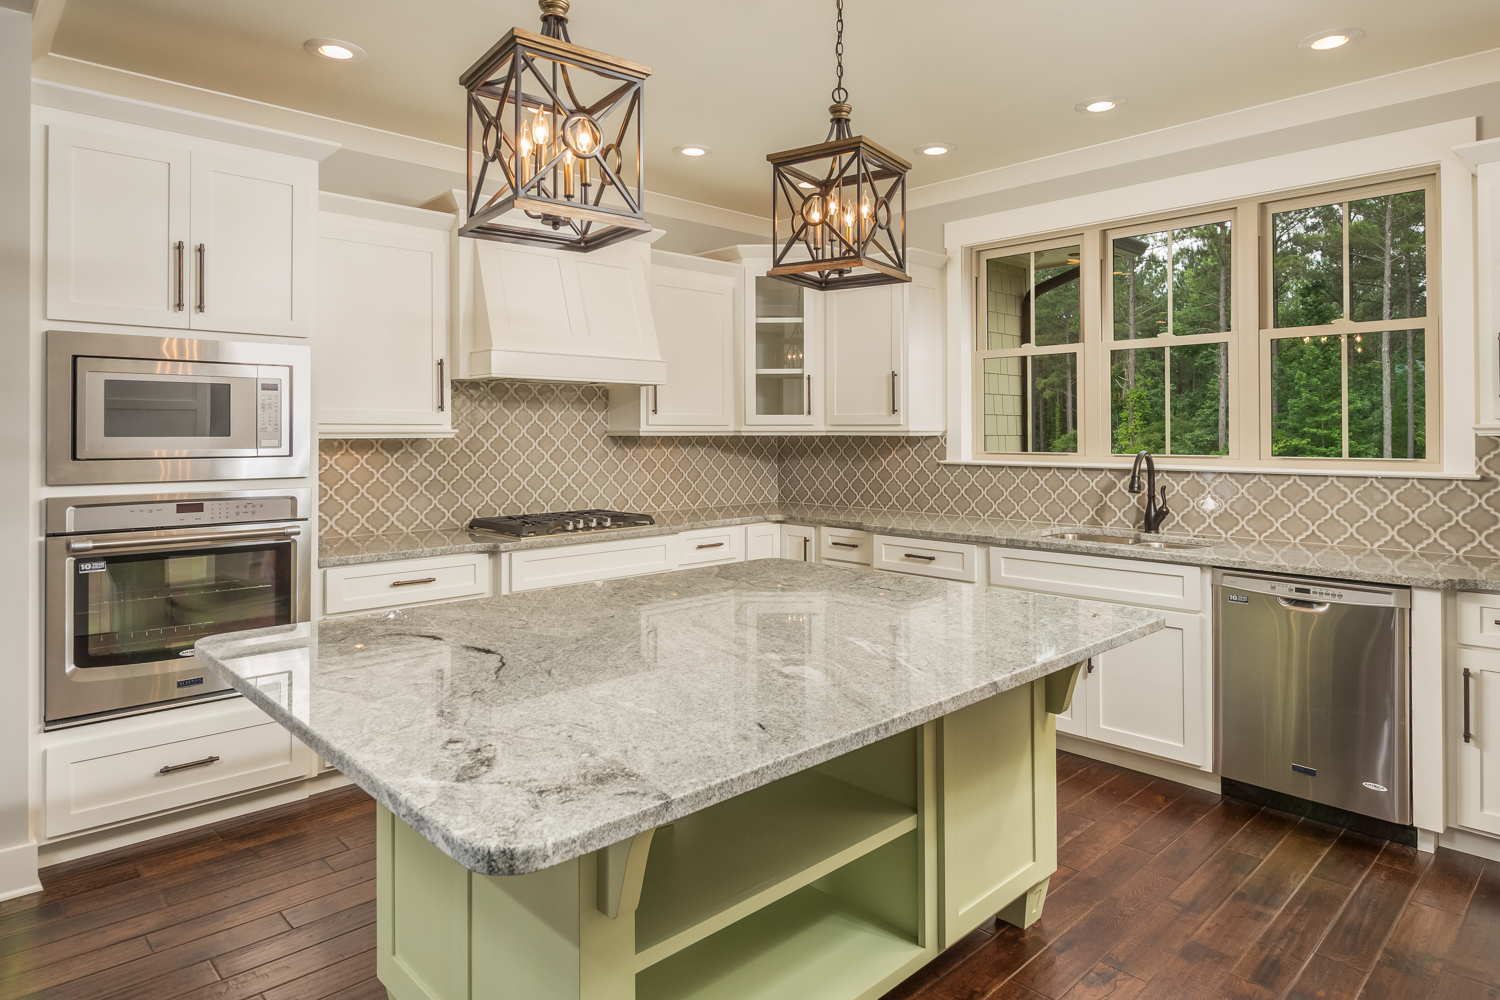 custom kitchen with gas stove